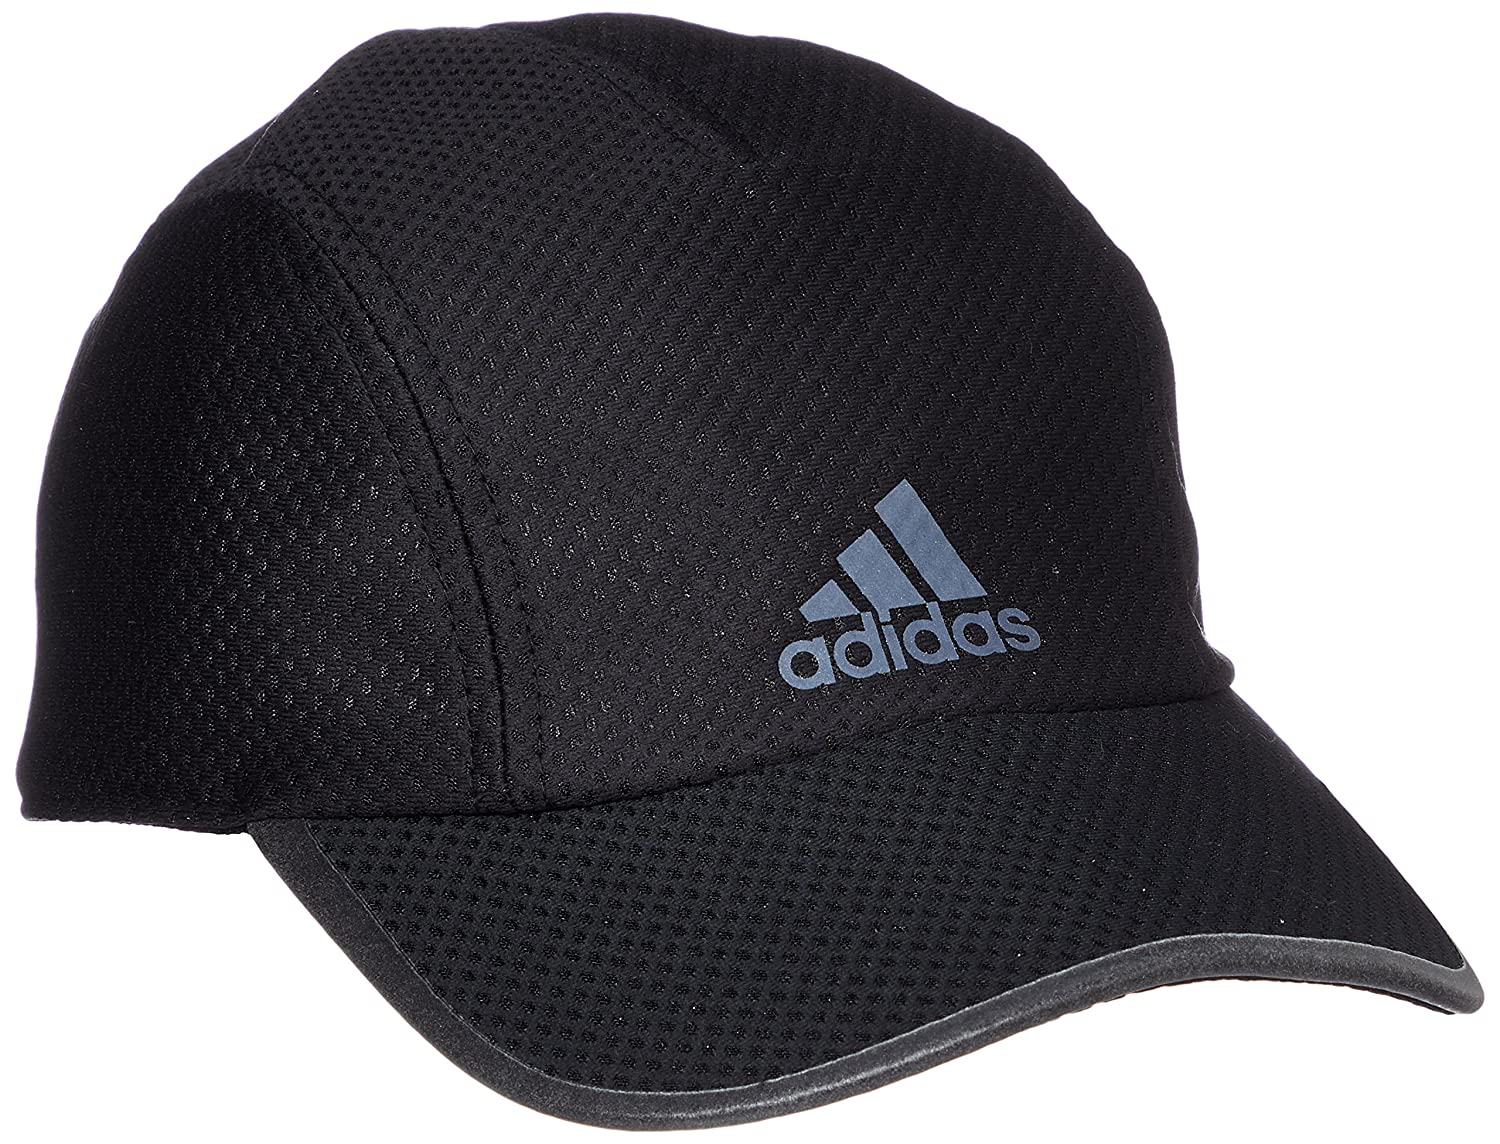 adidas Men's R96 Climacool Cap, Black Reflective, One Size CF9628